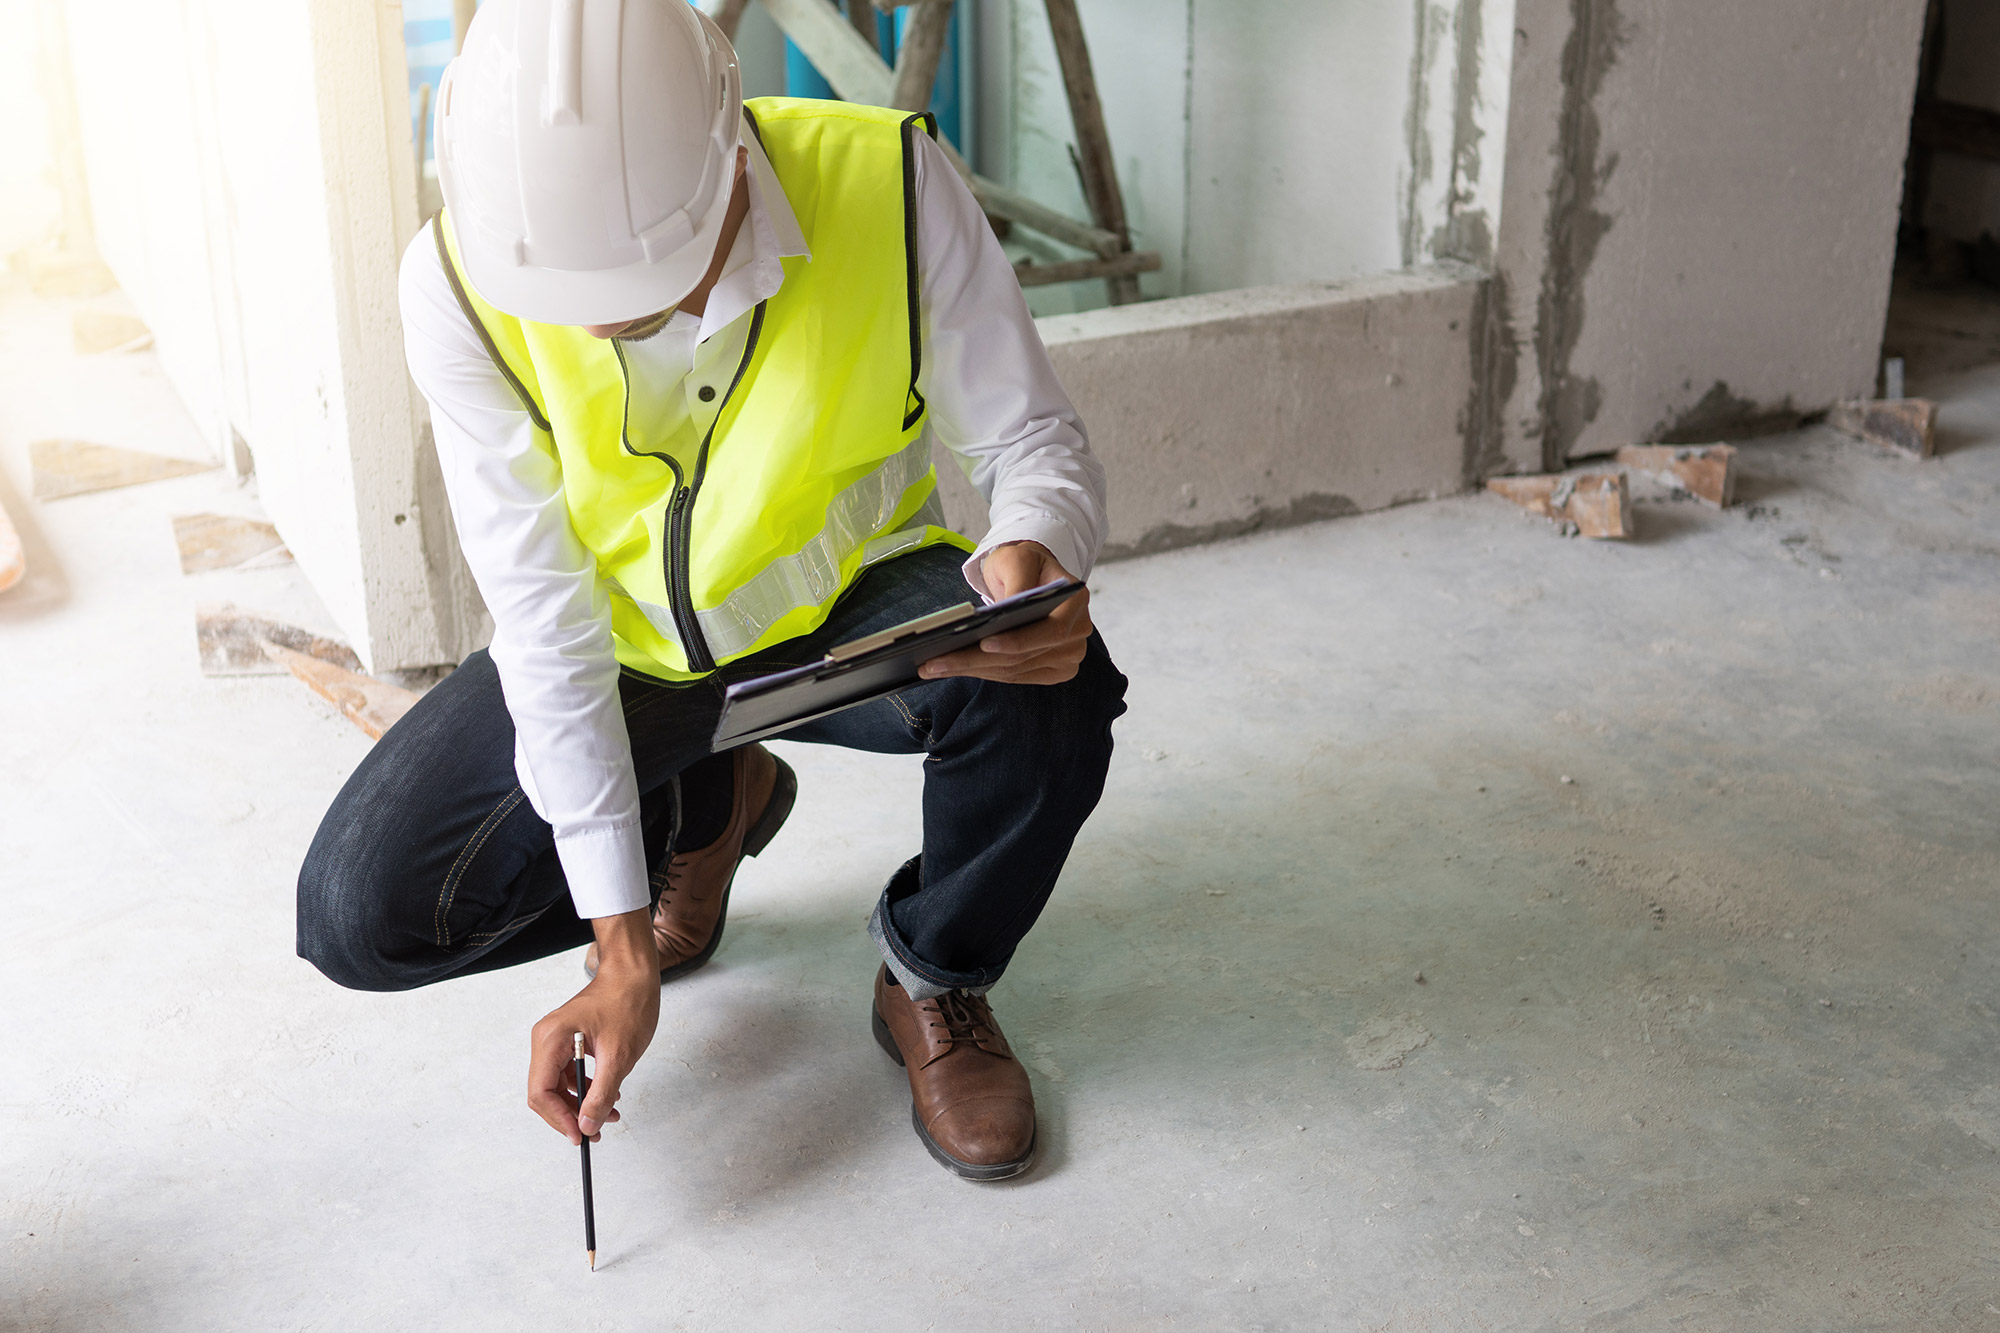 inspector reviewing installation of material at a construction site